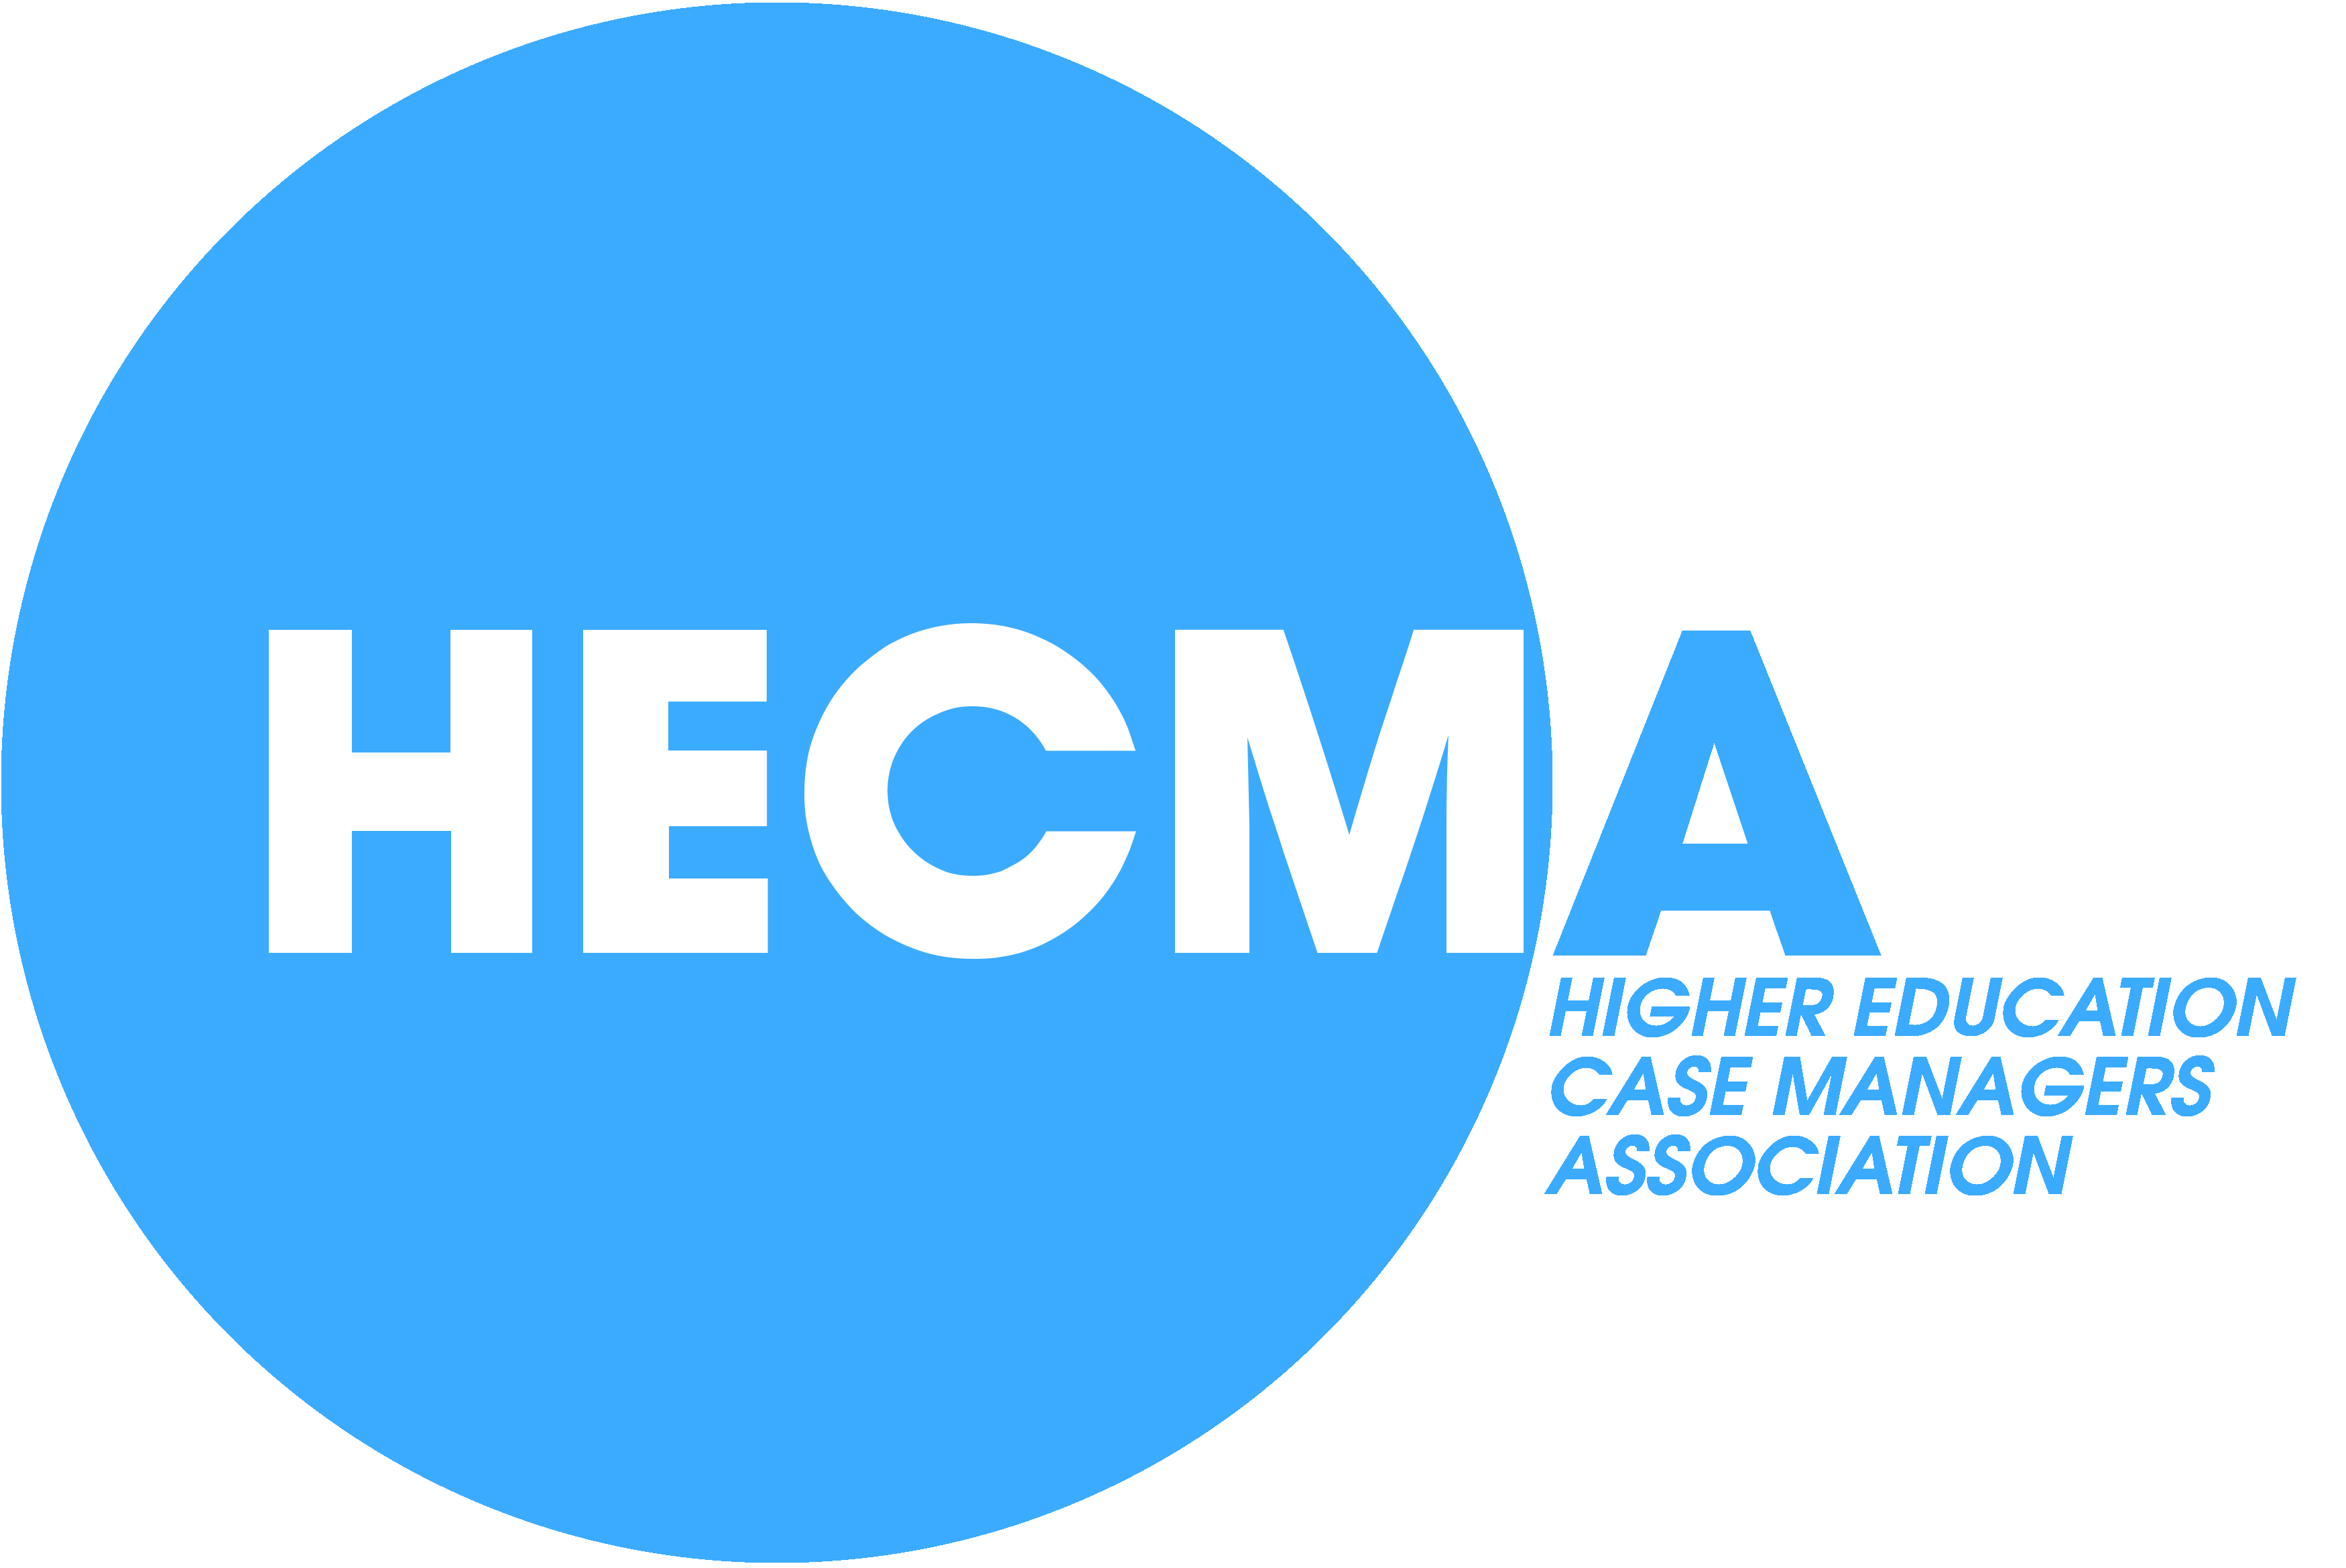 Higher Education Case Managers Association